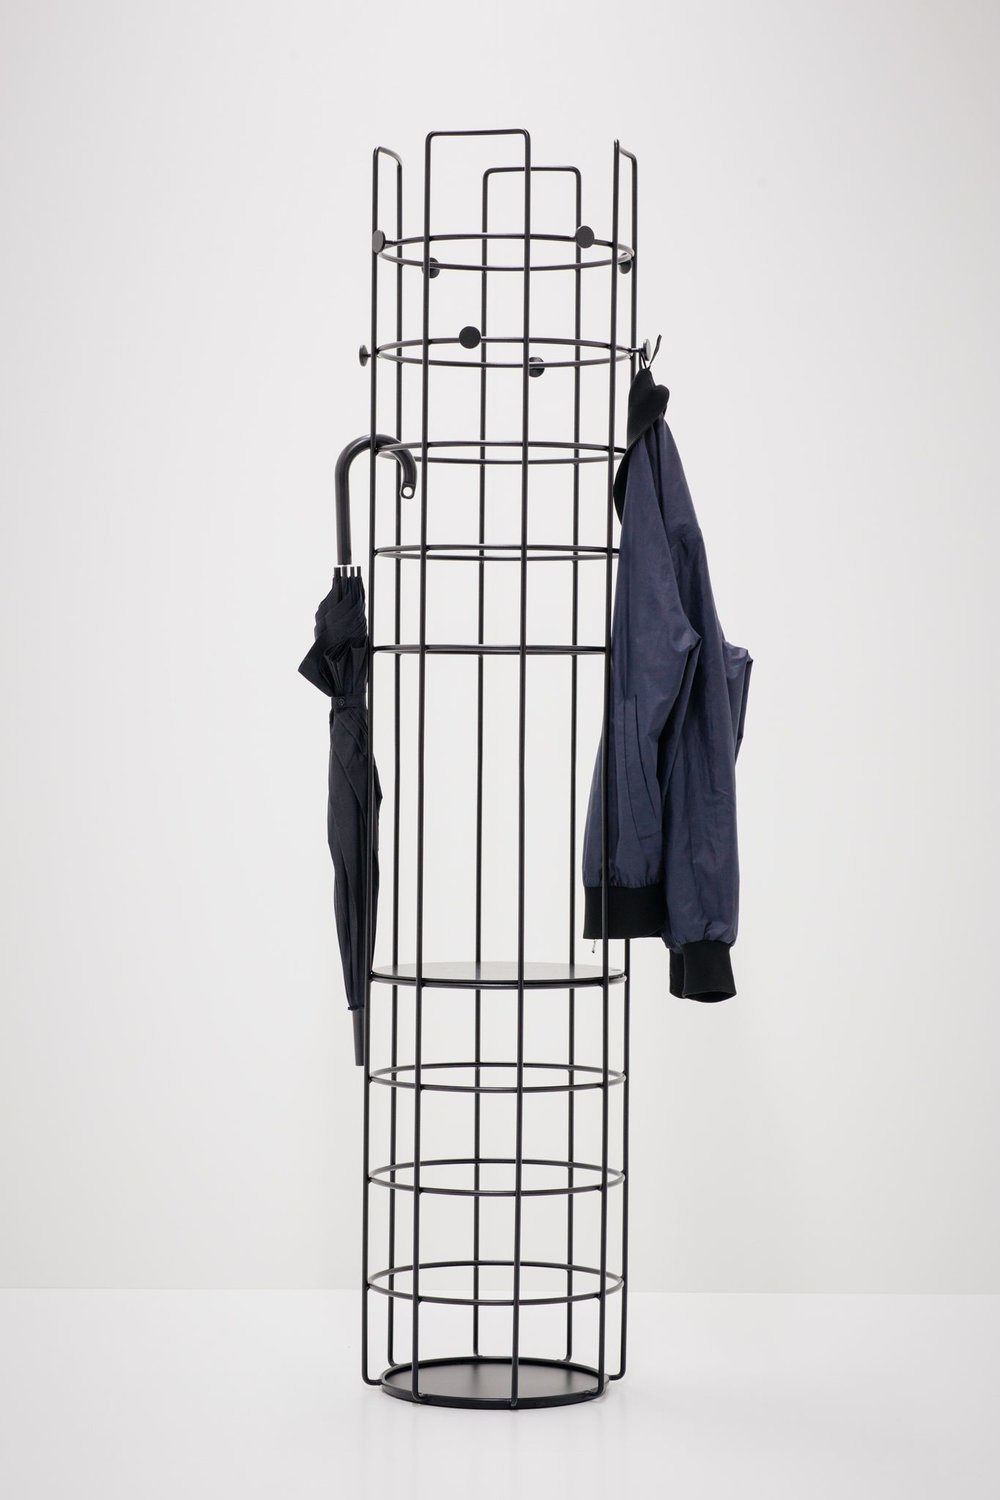 Bazar coat rack designed by Steffen Kehrle